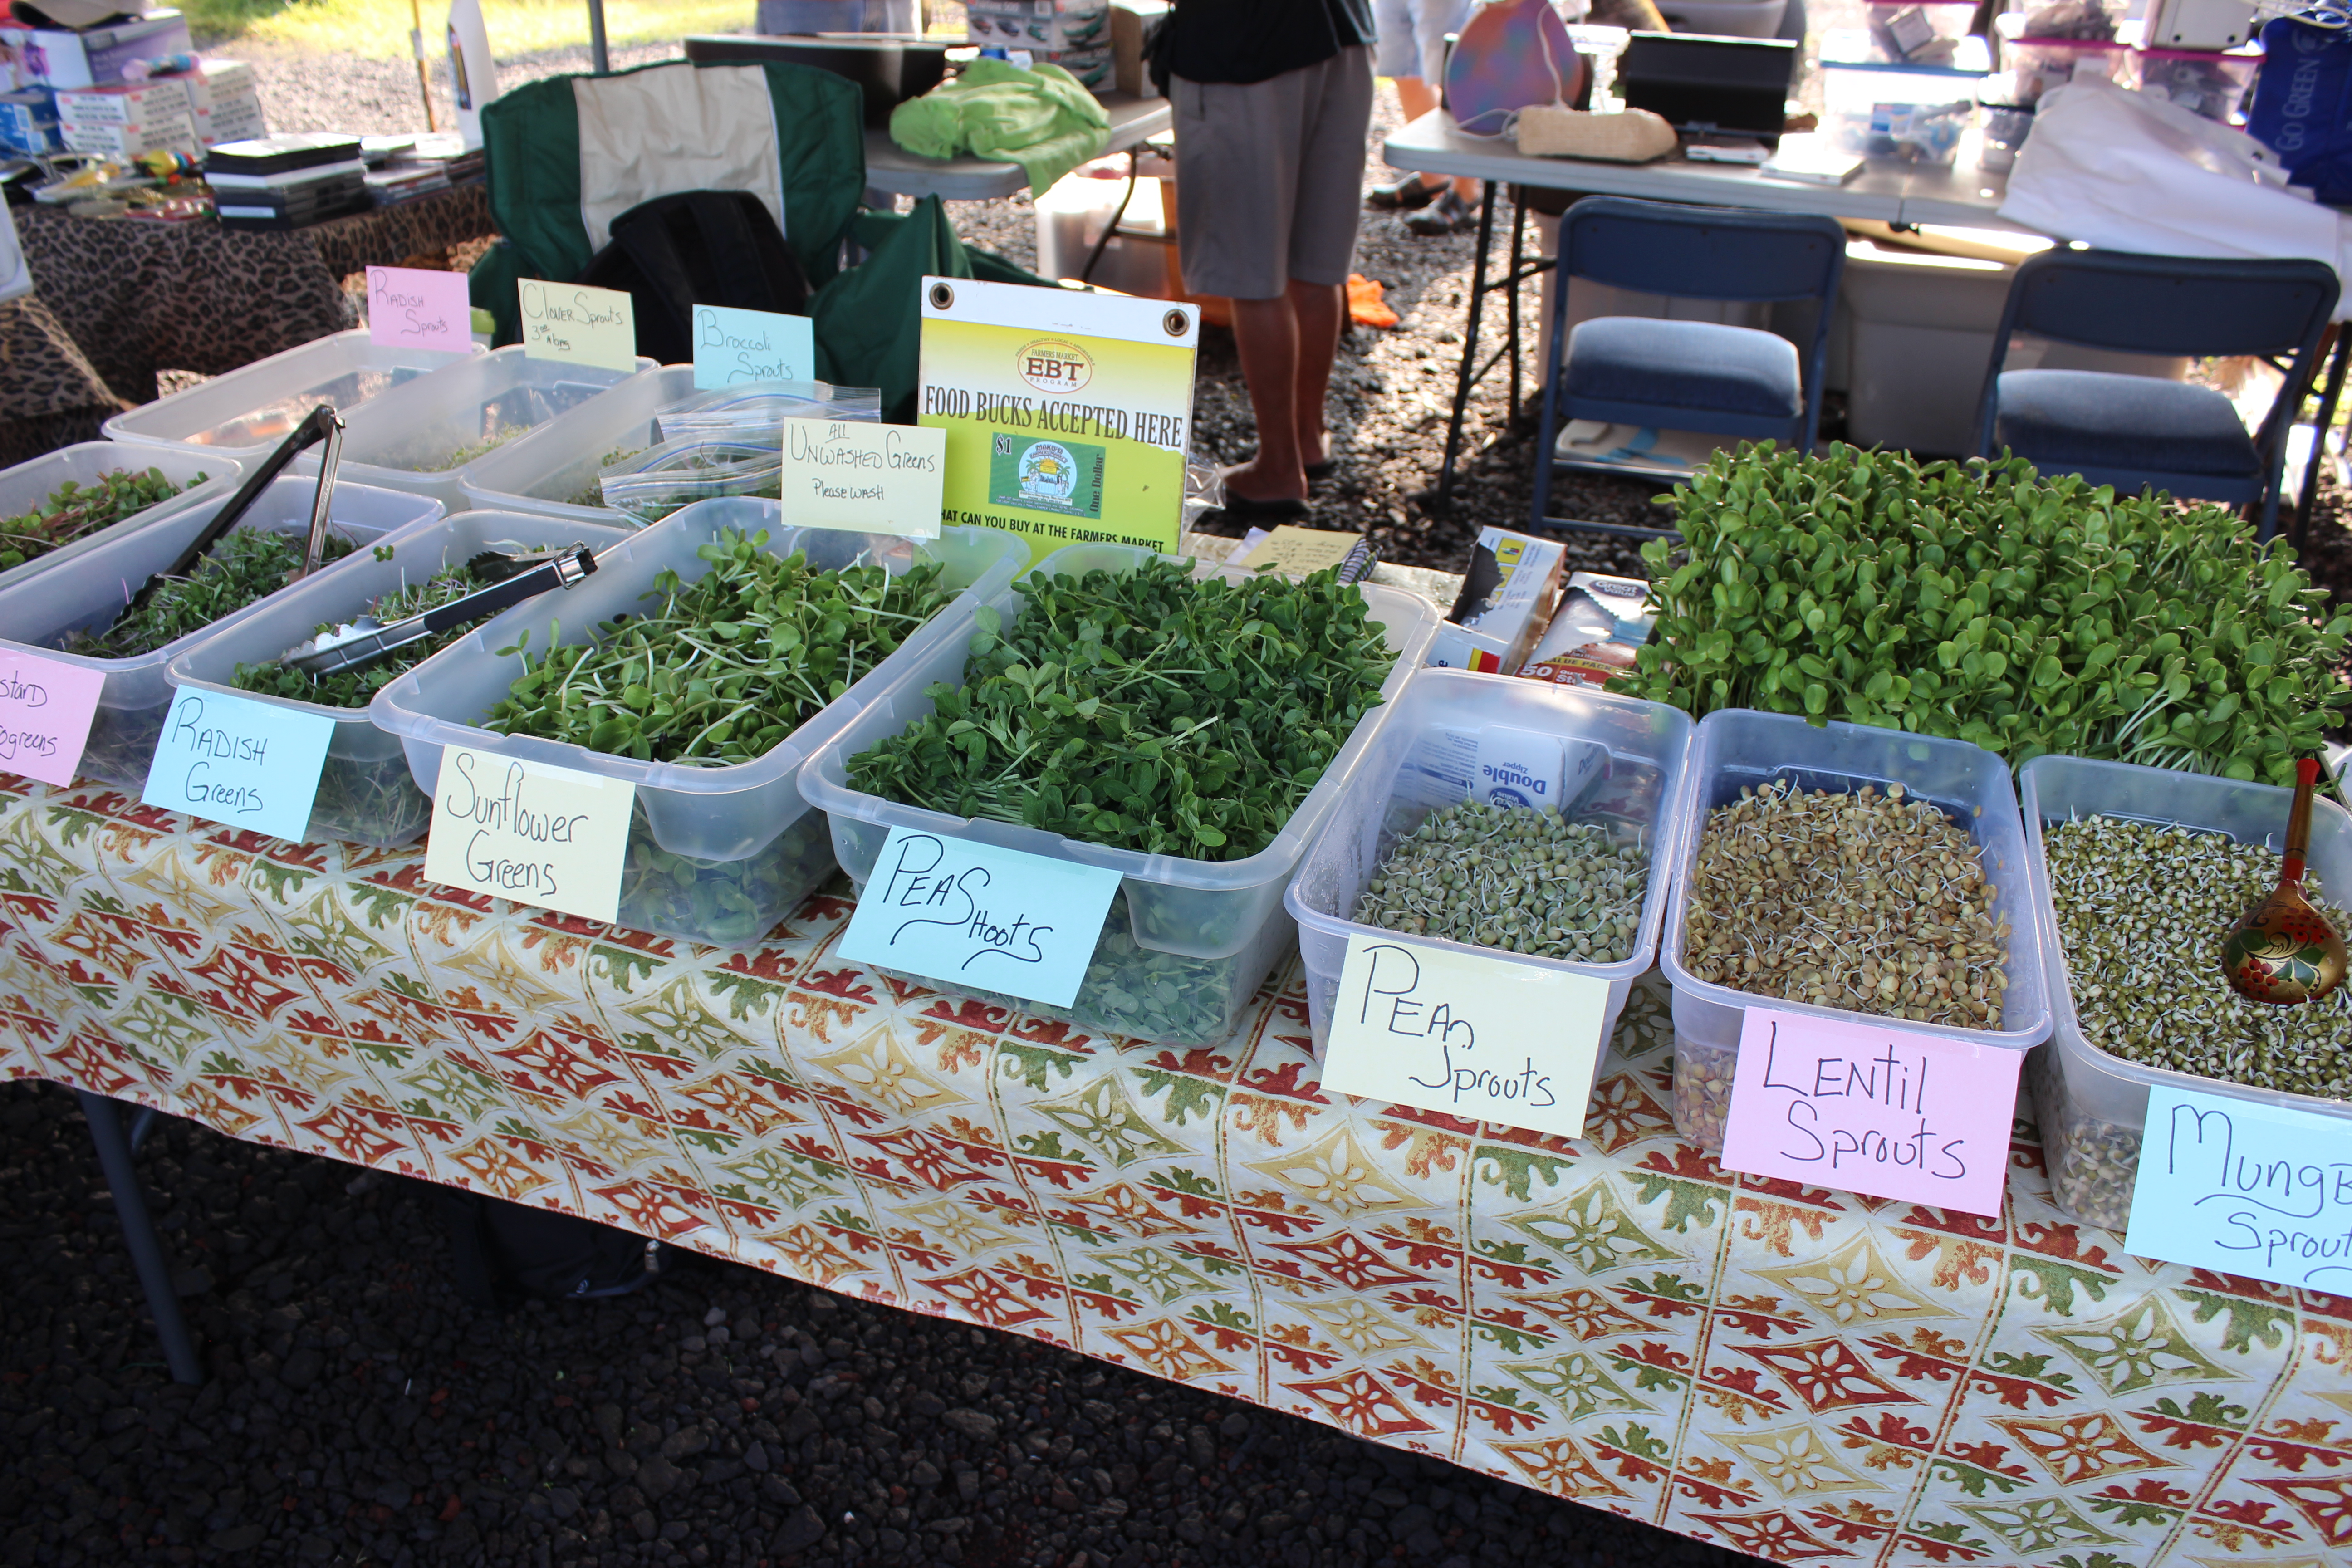 Hawaii Eco Living Sprouts And Microgreens, Where?